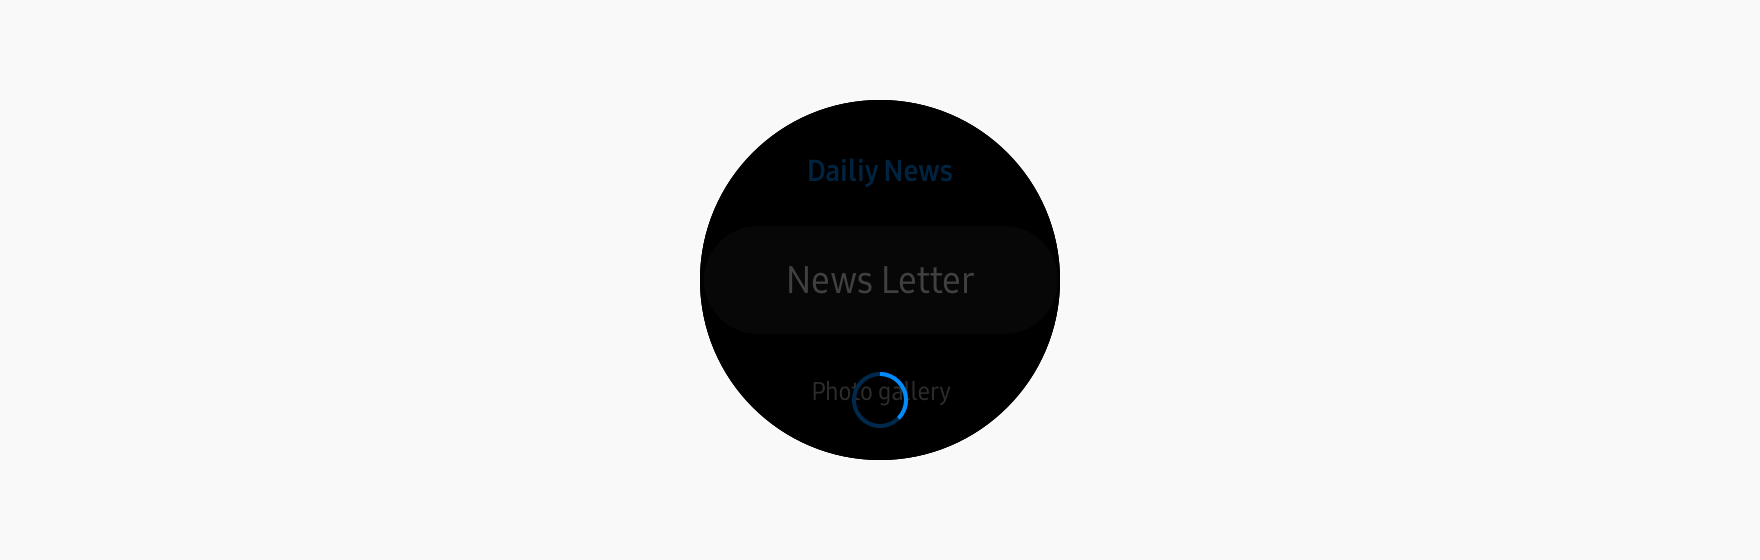 A small activity indicator spins in the middle of the screen to show that an action is ongoing.